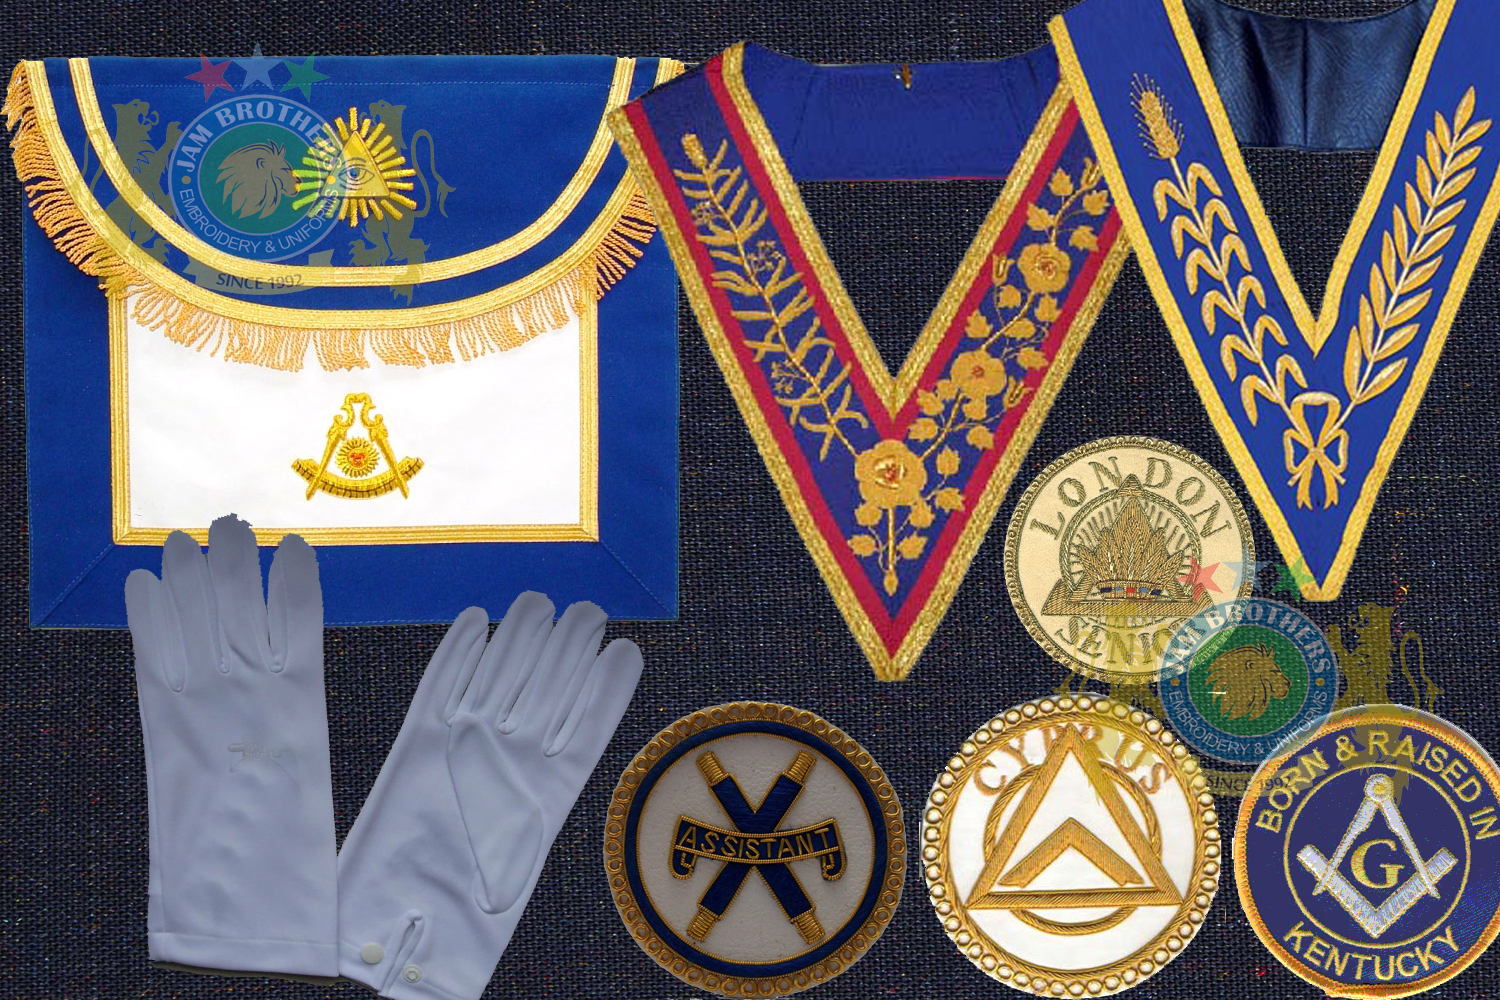 Freemason Products Apron Gloves Compass Logo Eye Freemason Patches Scarf Bag Masonry Flags Banners Pennants Embroidered Hand Machine Printed Clubs Promotional Table Flags Car Flag Hoisting Flags Ranks Shoulders Sliders Bullion Shoulder Ranks Naval Army History Period Epaullettes Epaulet Shoulder Rank Slider Caps Hats Officer Caps Berets Military Honor Cap Sports Cap Beanie Officer hat officer cap Lanyard Sword Knot Aiguillettes Braid Rope Ribbon Accessories Military Uniform Accouterments Lace Trimming Braid Gold White Silver Blue Weave Weaving Uniforms Accouterments Tailor Belts Leather Ceremonial Combat Cadet Parade Belts #Hand Embroidery #BullionEmbroidery #TradeBadges #MessDress #Badges #Ranks #Regiment #Parade #Ceremonial #Cord #Textile #ArmedForces #BritishArmy #Army #Aiguillette #Military #MilitaryUniforms #Militaria #Insignia #Headwear #Caps #OfficerCaps #UniformCaps #PeakCaps #DressCaps #MilitaryCaps #RailCap #Berets #Glengarry #RoyalNavy #RoyalMarine #RoyalAirForce #RAF #Infantry #Armor #EME #Battalion #Medals #Ribbons #Braid #Lace #Uniforms #UniformSupplie #Police #Security #Buckles #Guards #Accoutrement #Badge #Patch #Machine #MachineEmbroidery #HandEmbroidery #Bullion #BullionBadges #BullionEmbroidery #WovenBadges #Woven # Emblems #Regiment #Regimental #OfficerCaps #PeakCaps #Soldier #Helmets #Covers #HelmetCovers #Armlets #Sliders #Epaulettes #Webbing #Chevron #Officer #ShoulderBoards #Gorgets #Tassel #Sash #Hand #HandSewn #Aviation #AviationClothing #Crest #FamilyCrest #CoatofArms #EmbroideredPillows #Cords #Aiguillettes #CapCords #ChinCord #DressCord #SwordKnot #Tassels #WhistleCord #Lanyard #Knots #Banners #ClanBadges #Peaks #Visor #Wings #CapBadges #Pennants #HonorCaps #OfficerCaps #SportsCap #Masonic #Aprons #MasonicAprons #Collars #MasonicCollars #Gloves #MasonicGloves #MasonicPatches #Patches #Regalia #MasonicRegalia #Freemason #Braid #Chevron #Cuffs #Fringes #Sashes #HeadGear #FieldGear #England #USA #Poland #ArmedForces #Schools #Colleges #University #Sialkot #Pakistan Sialkot Pakistan PeakCaps OfficerCaps ShoulderRanks BullionBadges UniformAccessories MilitaryUniforms DressCap TradeBadge RankMarking WireBadges Army Airforce Navy Police